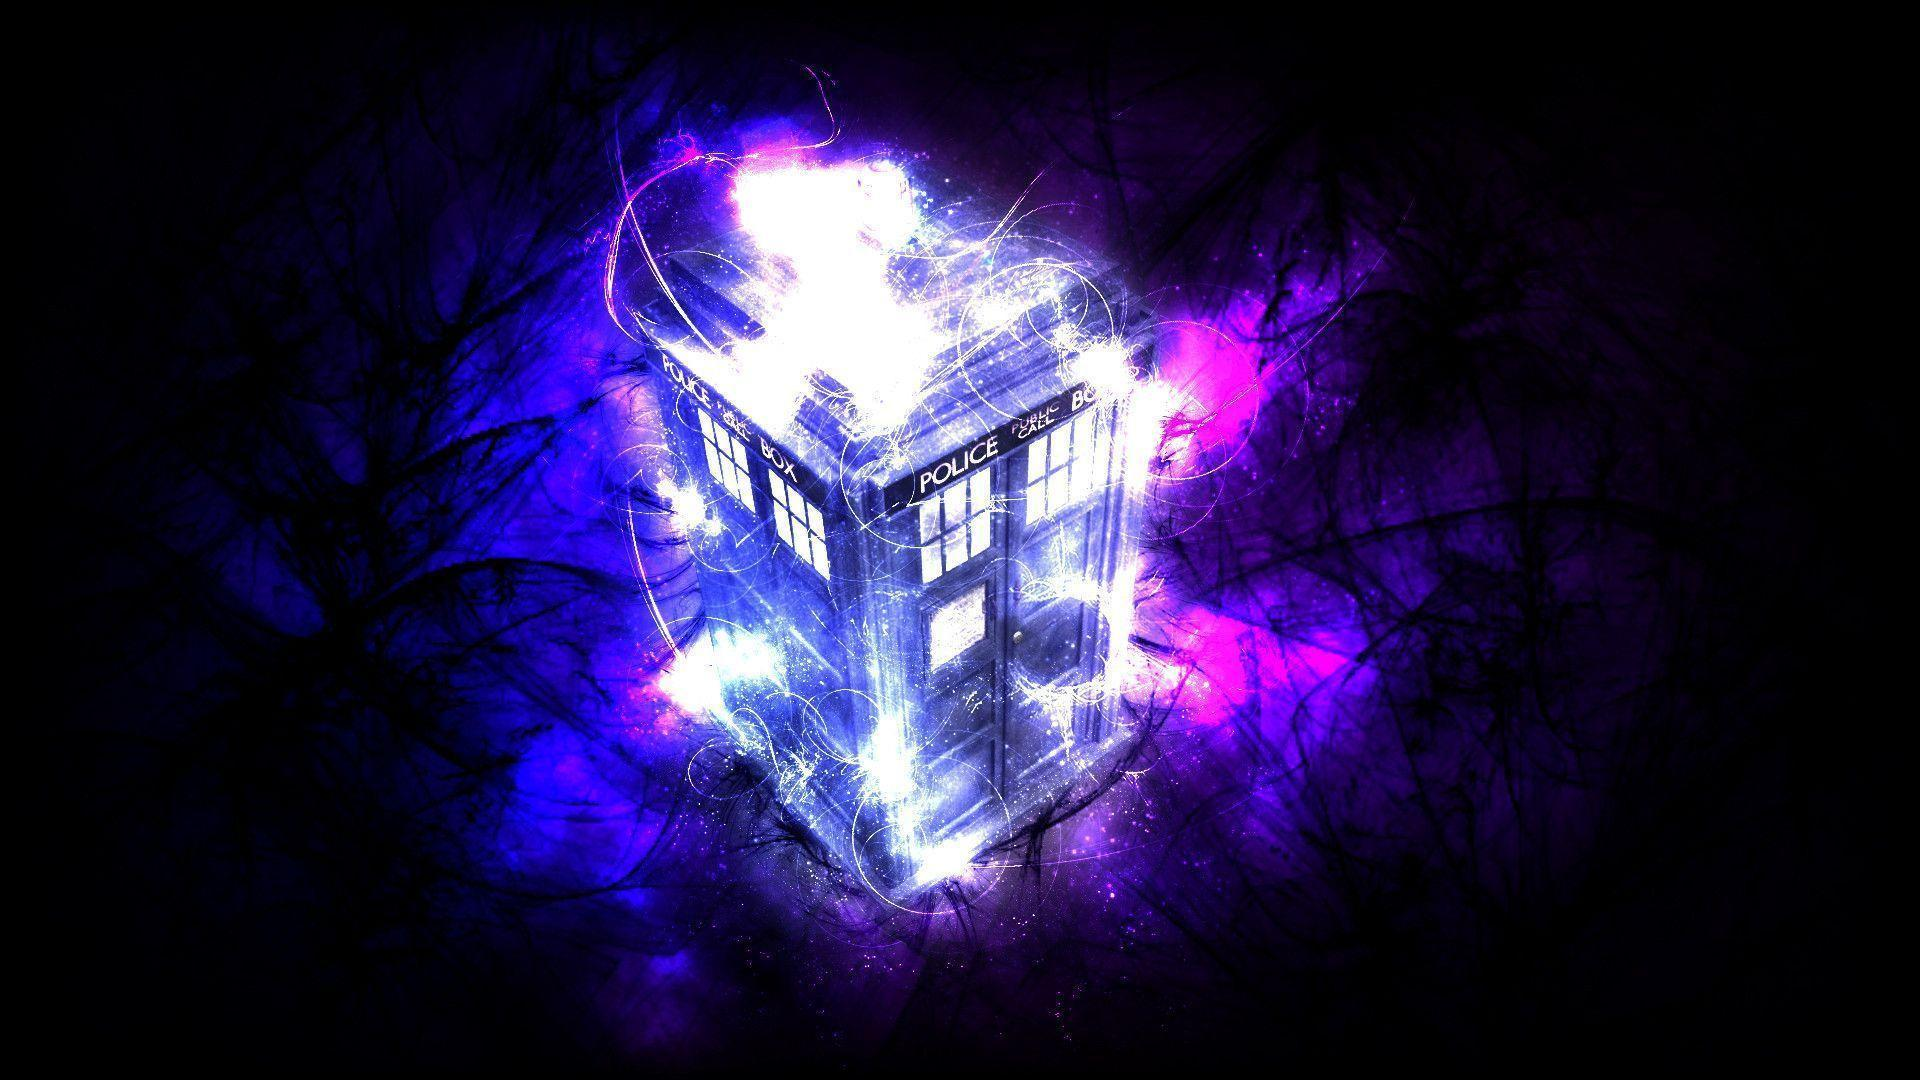 Movie Doctor Who Backgrounds Dr Wallpapers 1920x1080PX ~ Wallpapers